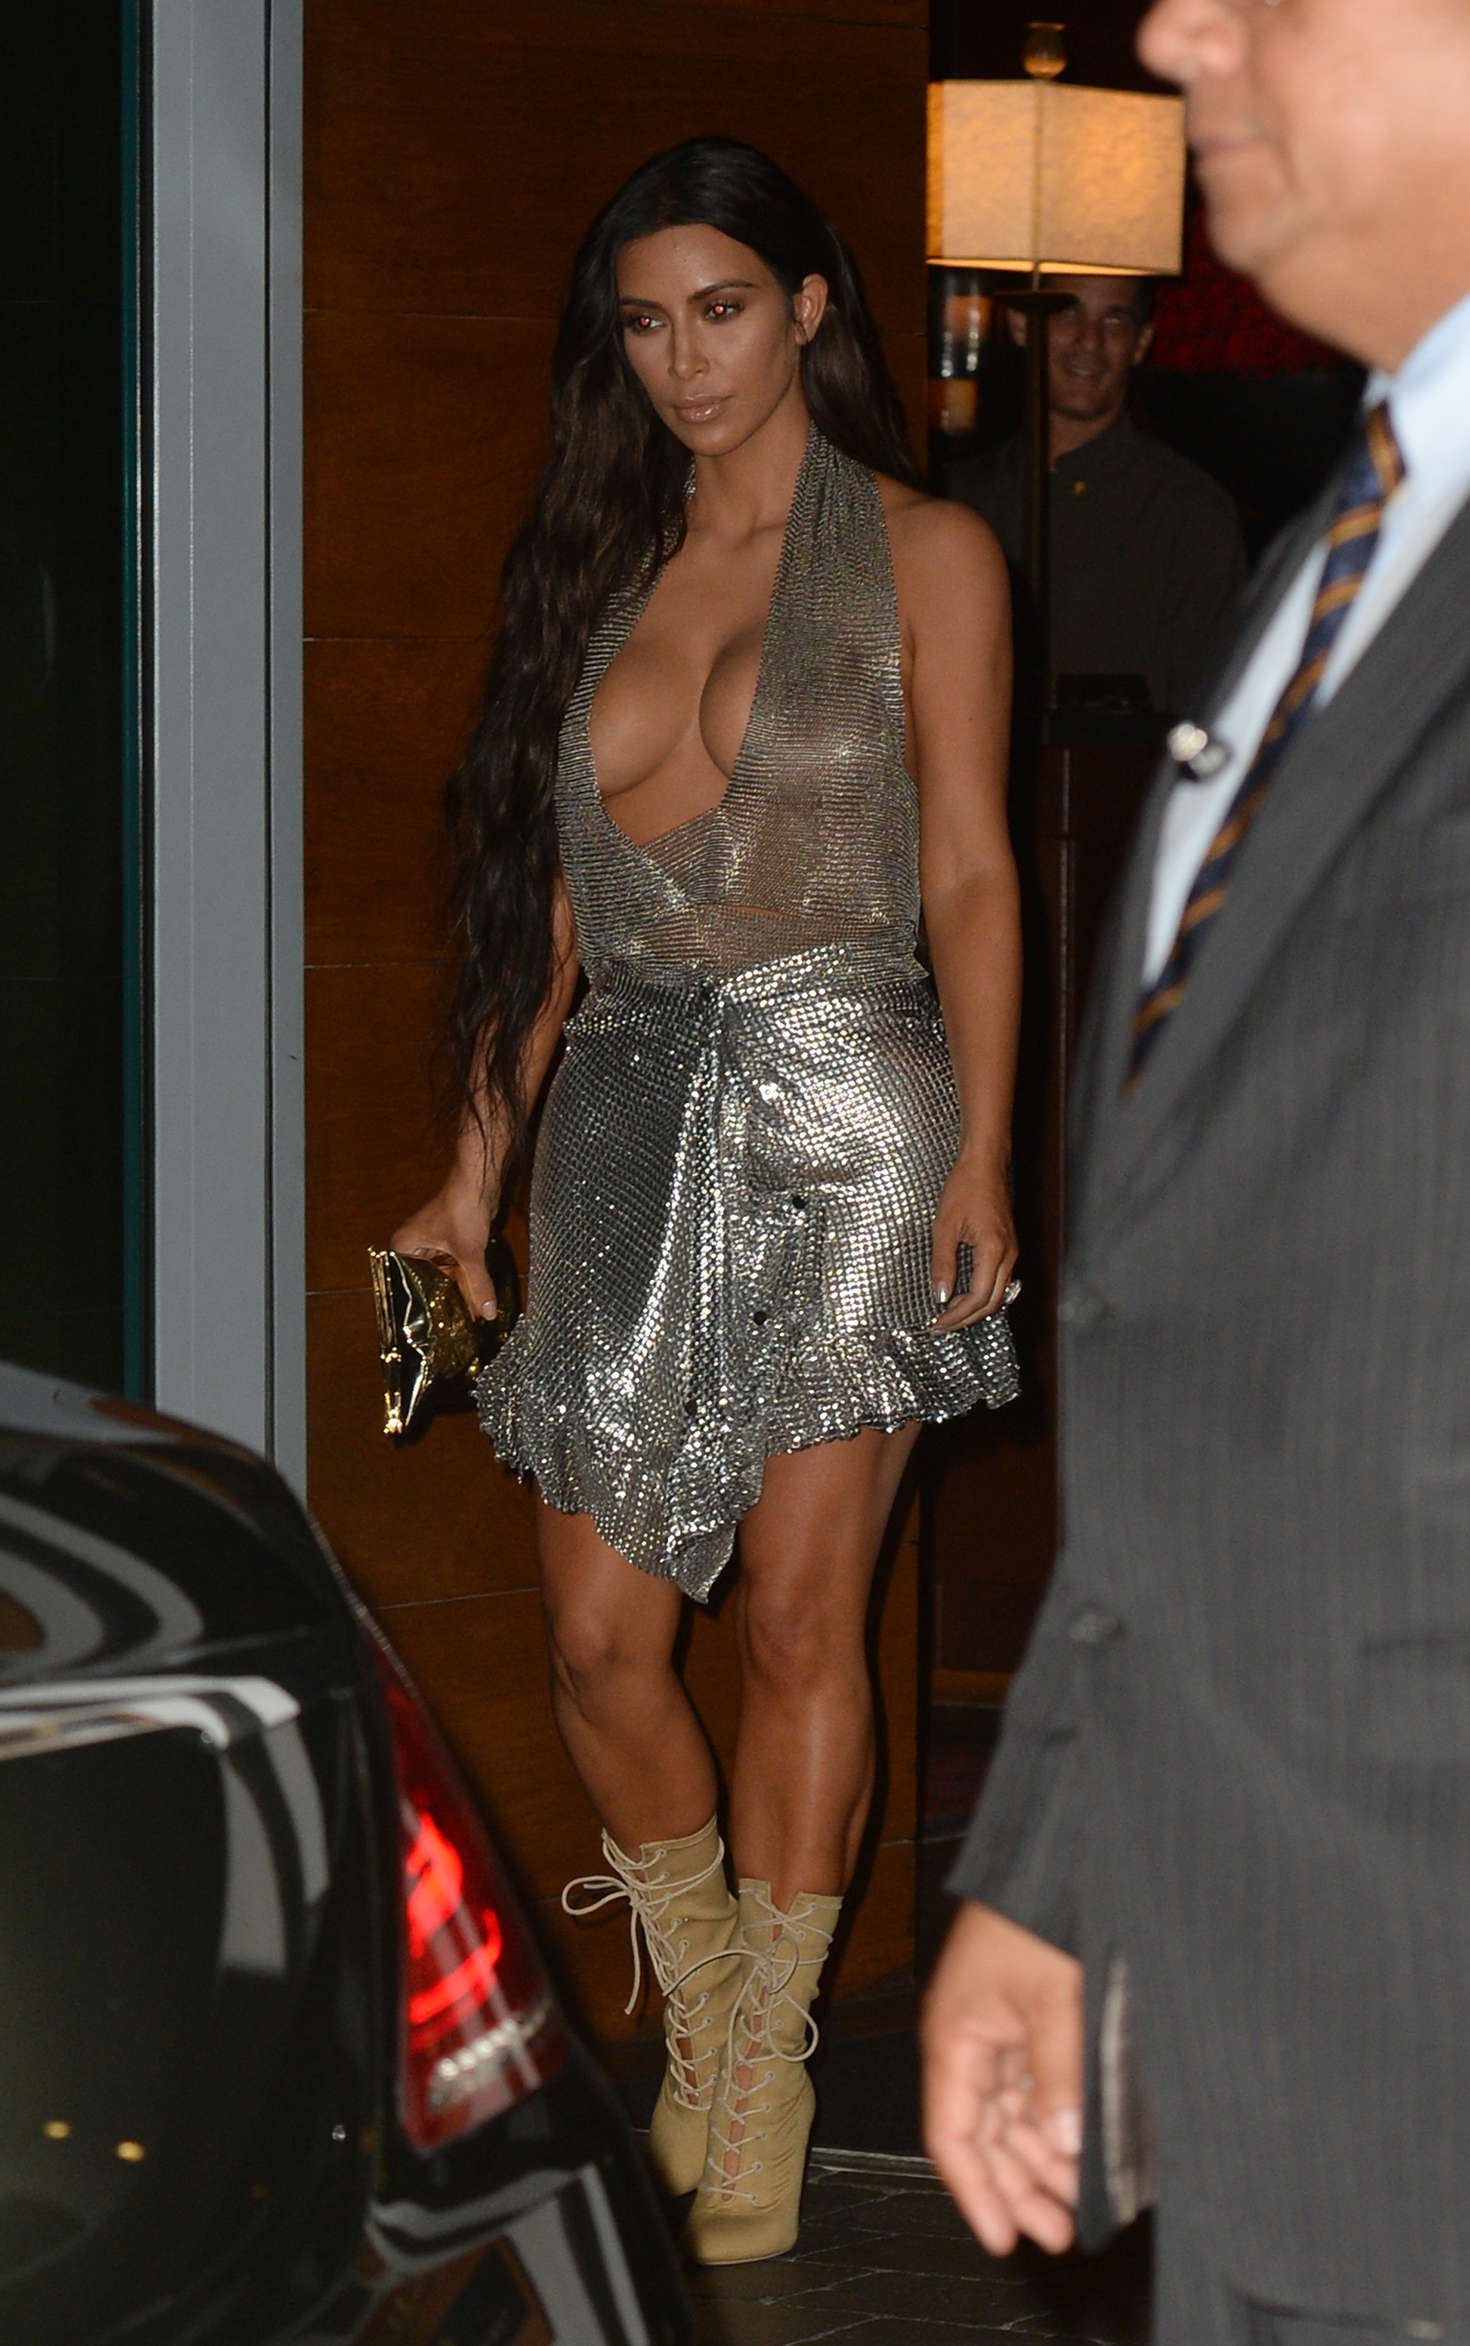 Kim Kardashian in Chain Mail Dress out in Miami